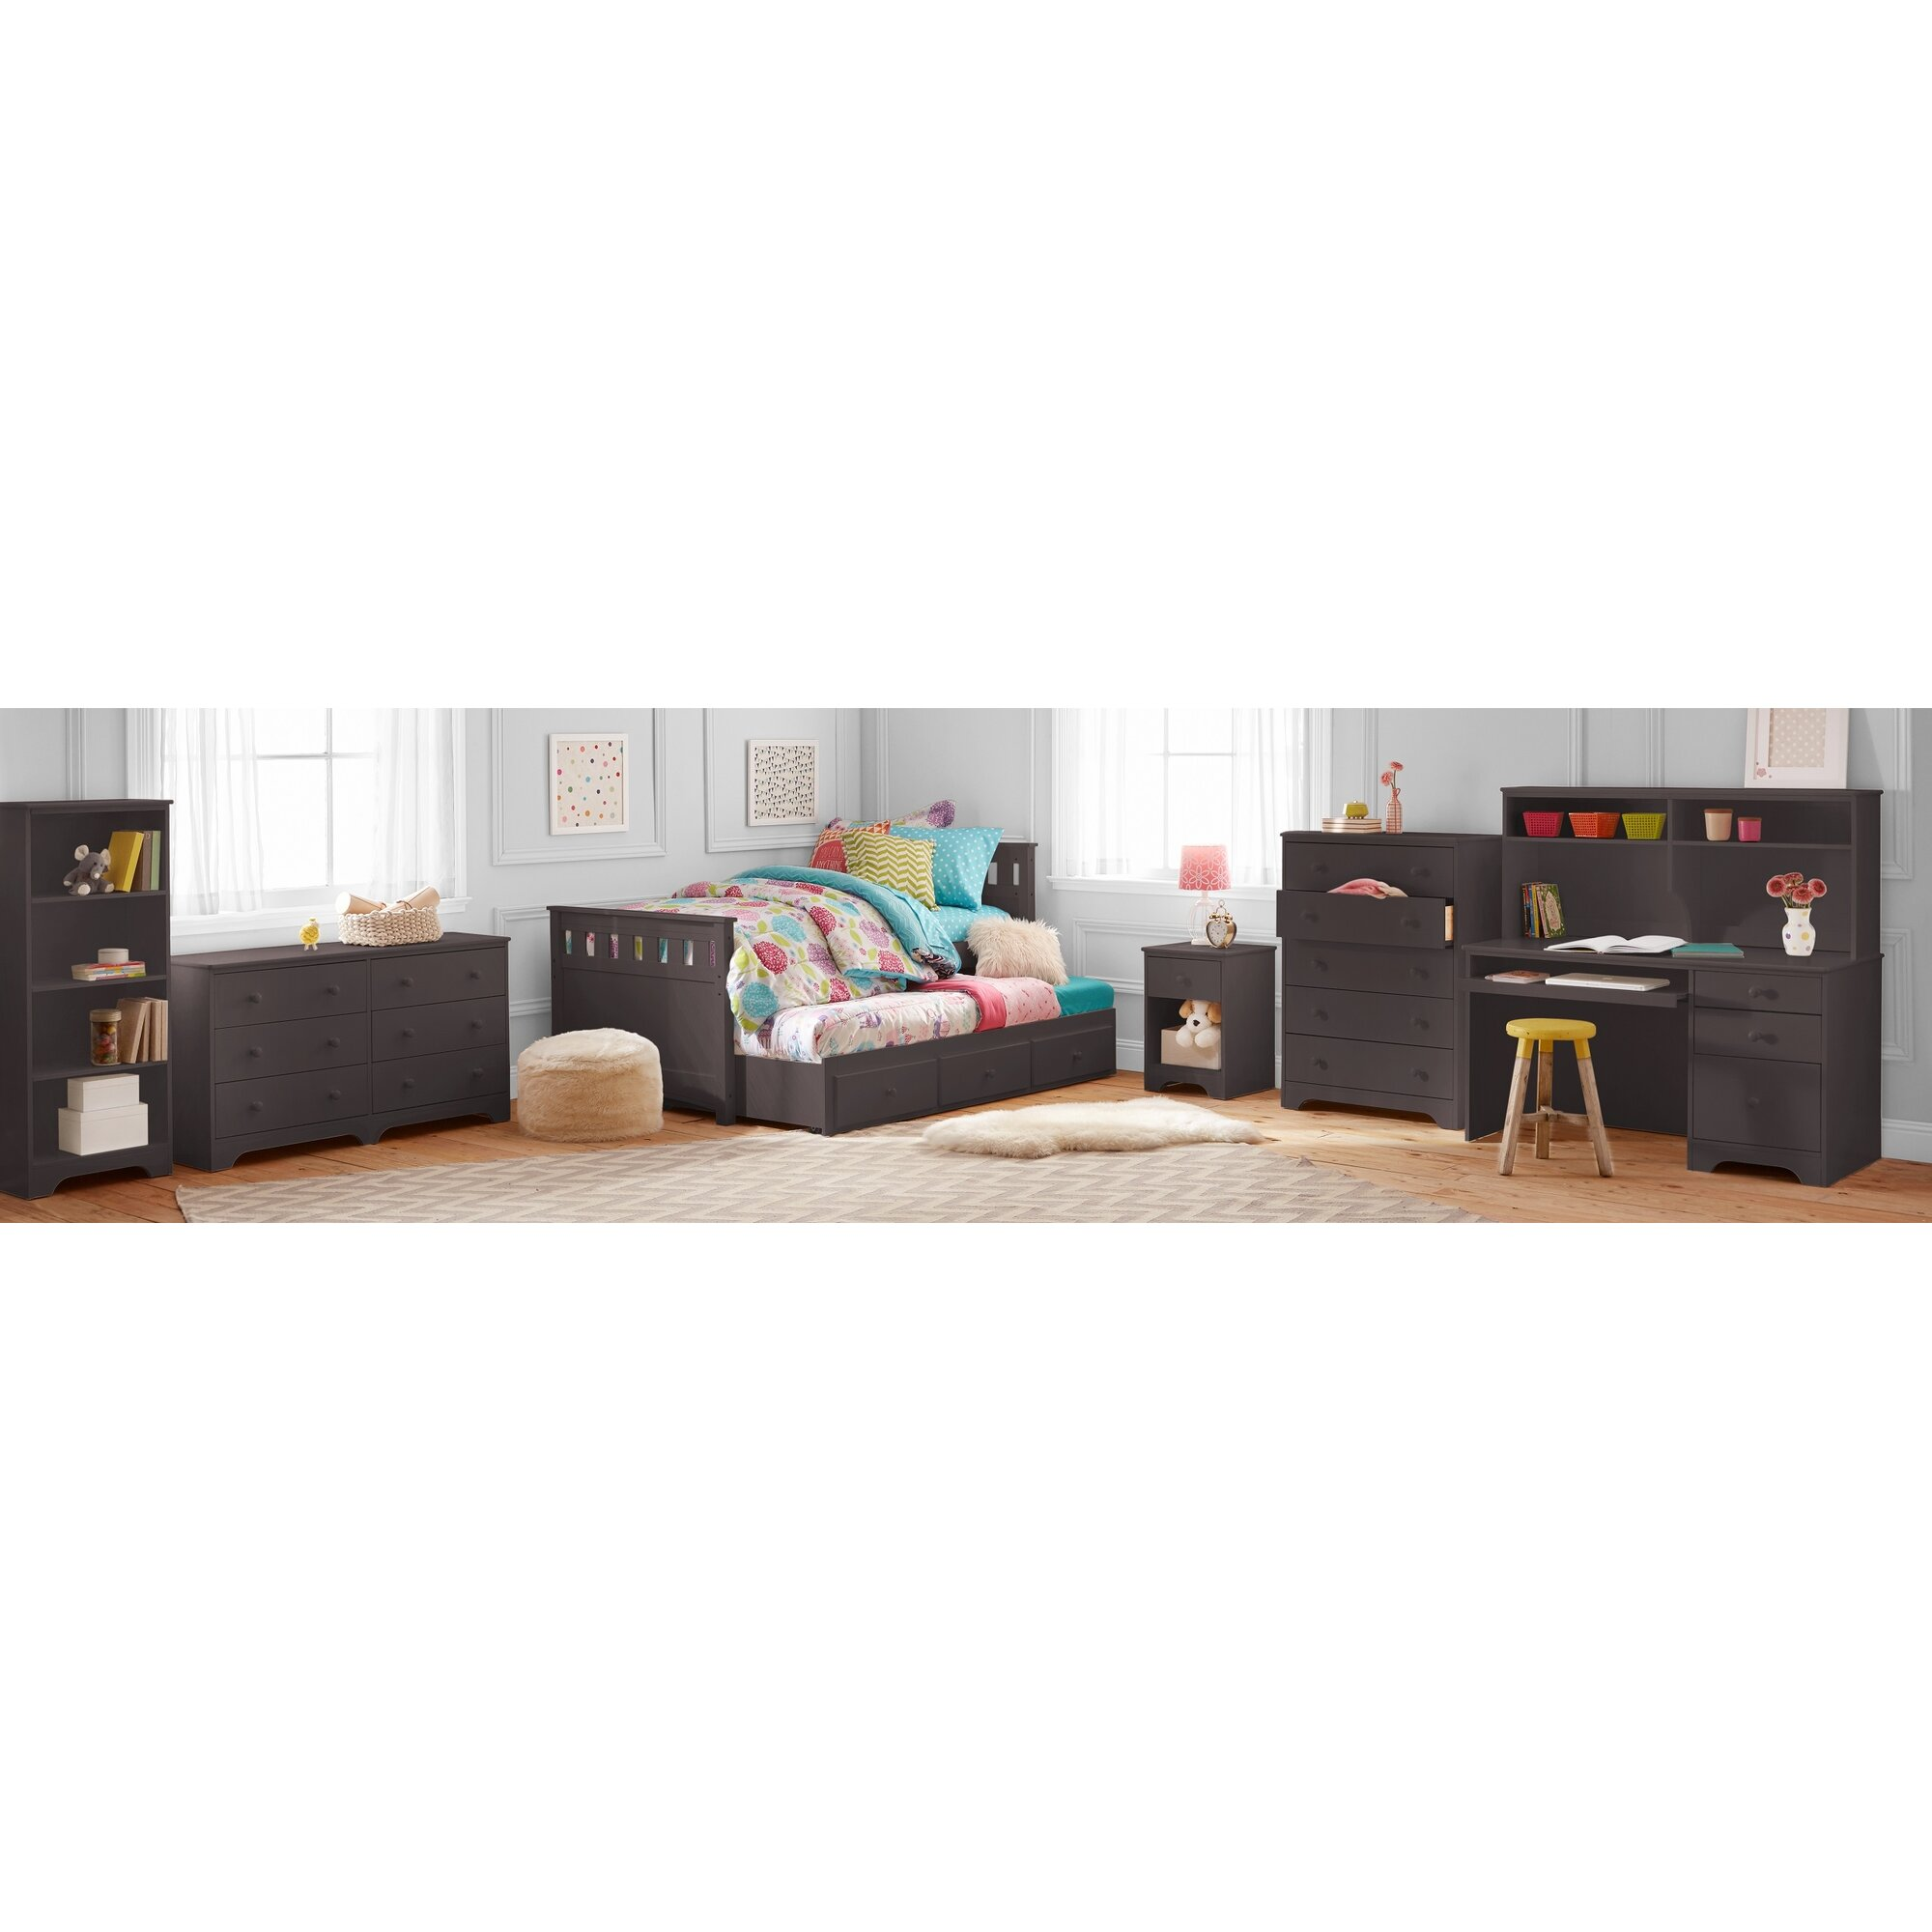 Better Homes Gardens Pine Creek Twin Captain 39 S Bed With Trundle And Storage Bedroom Set